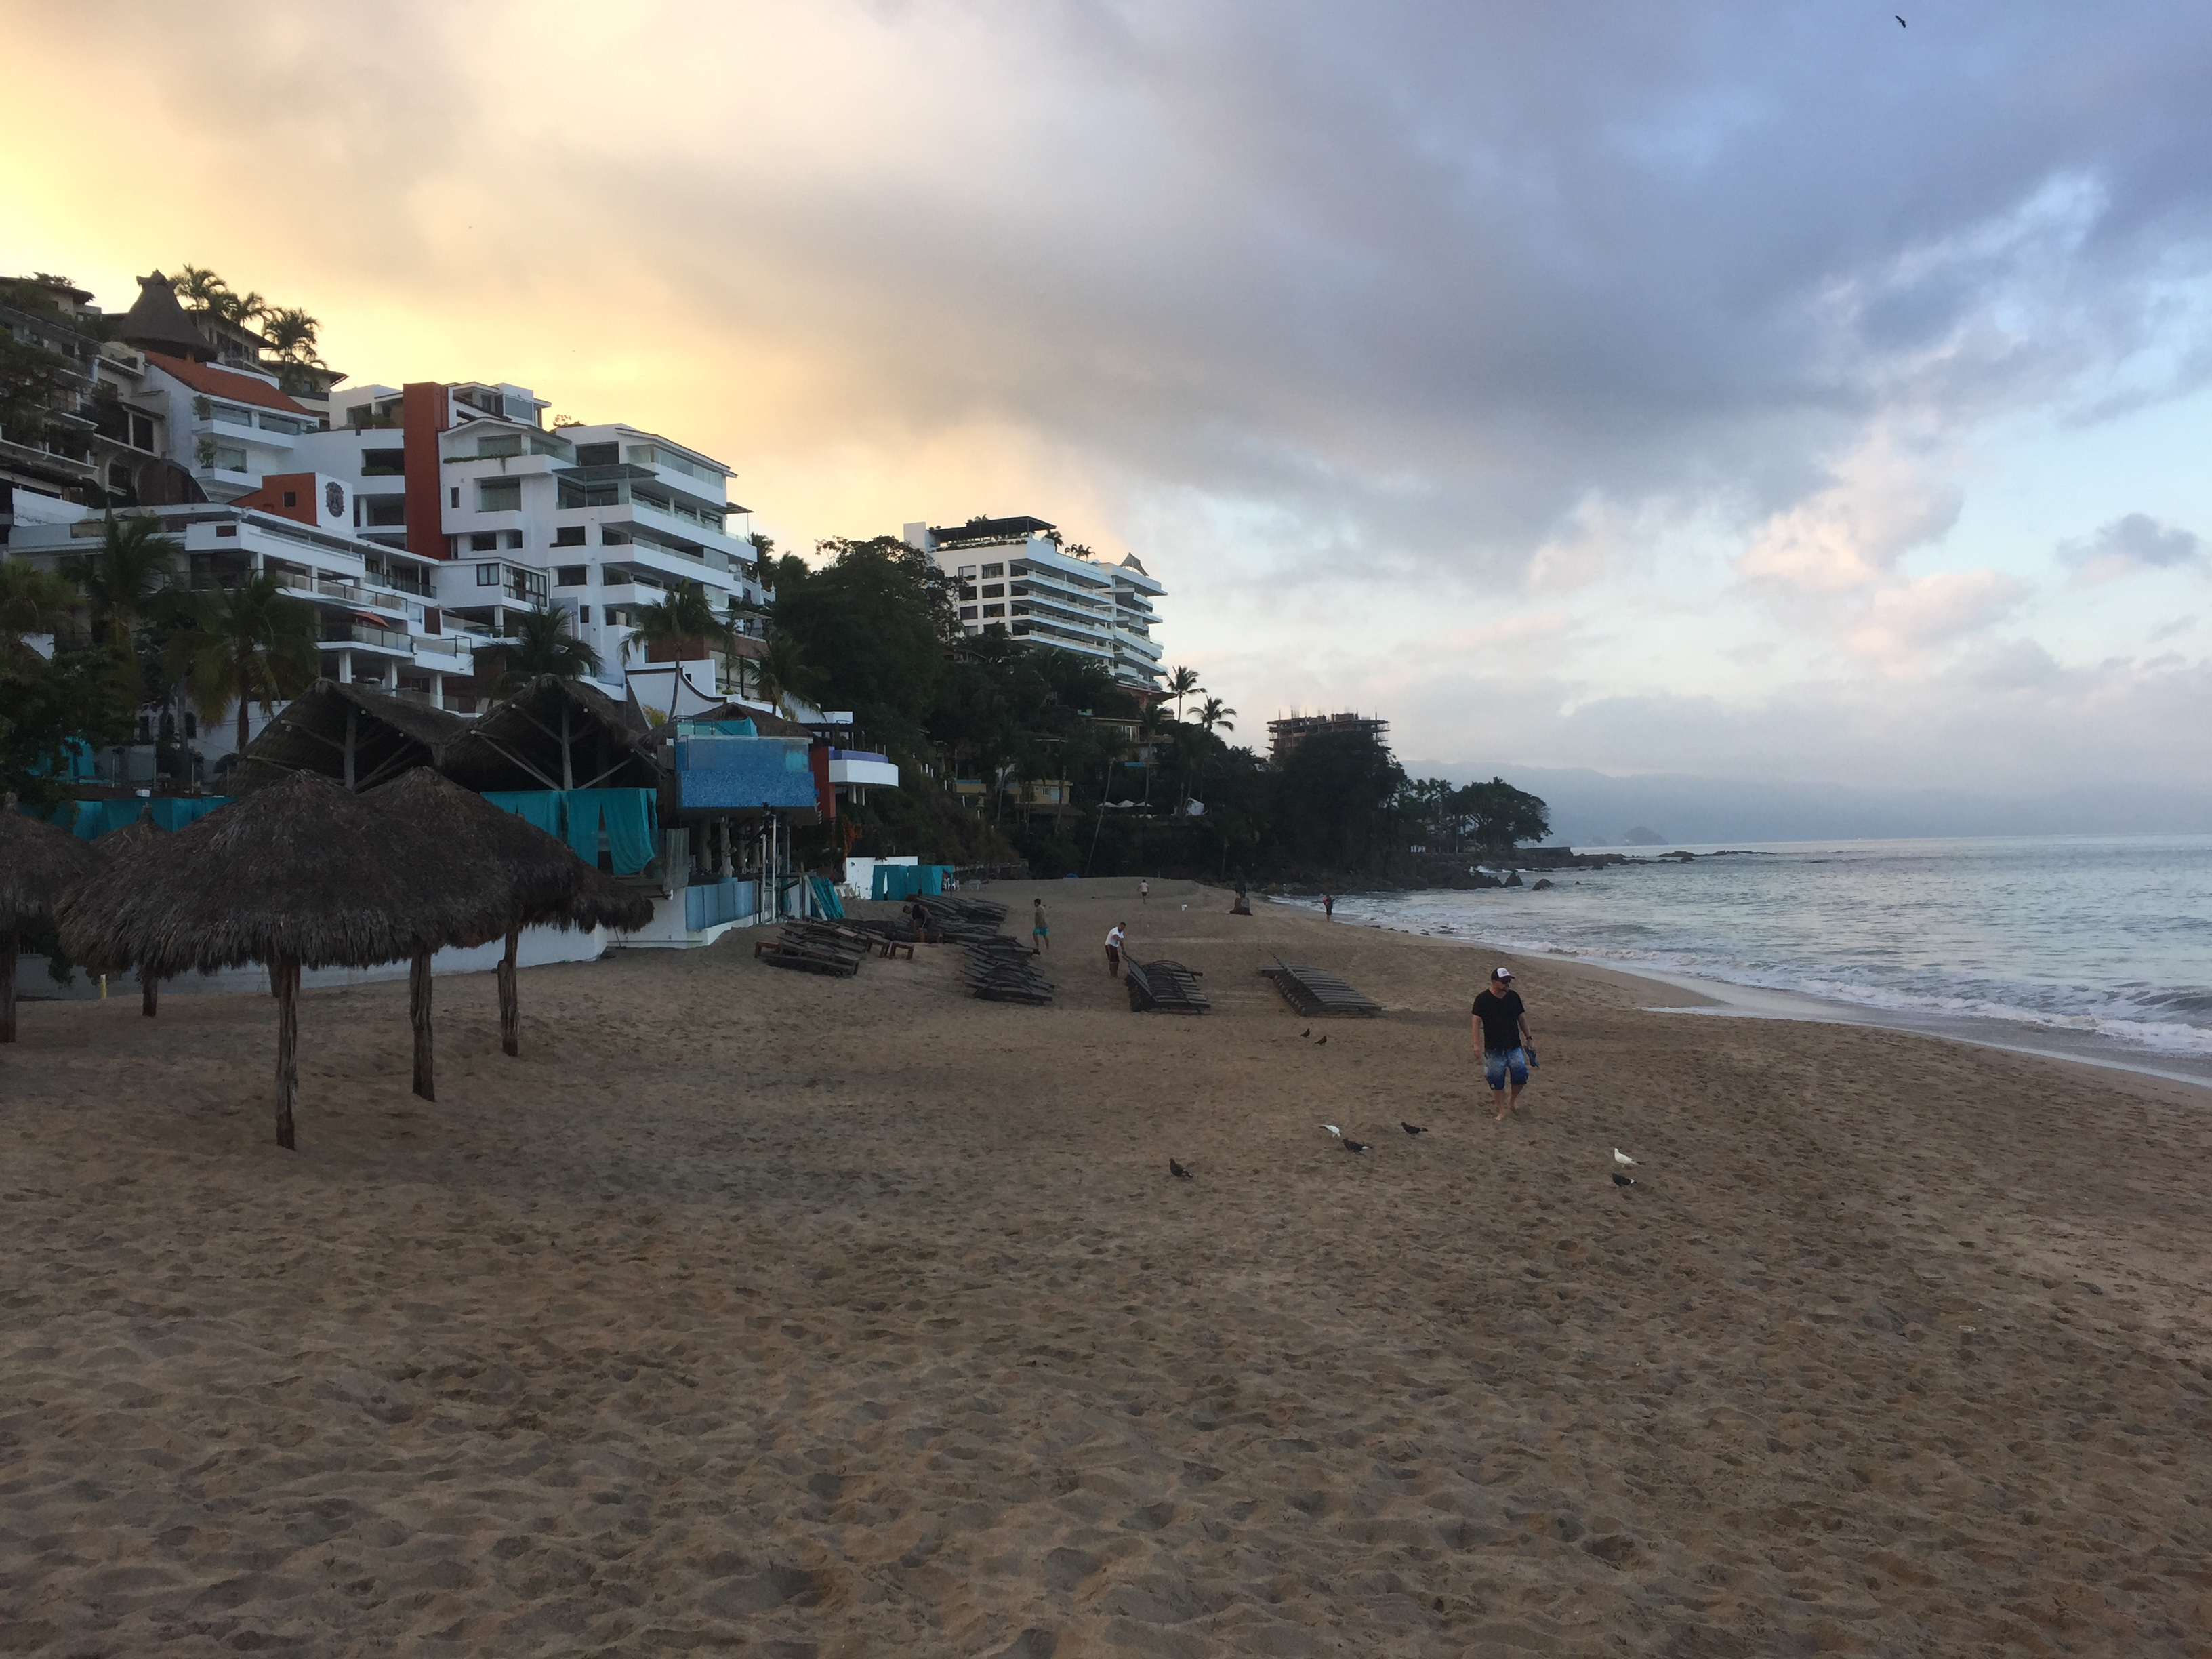 Sunrise at Los Muertos Beach in Puerto Vallarta.